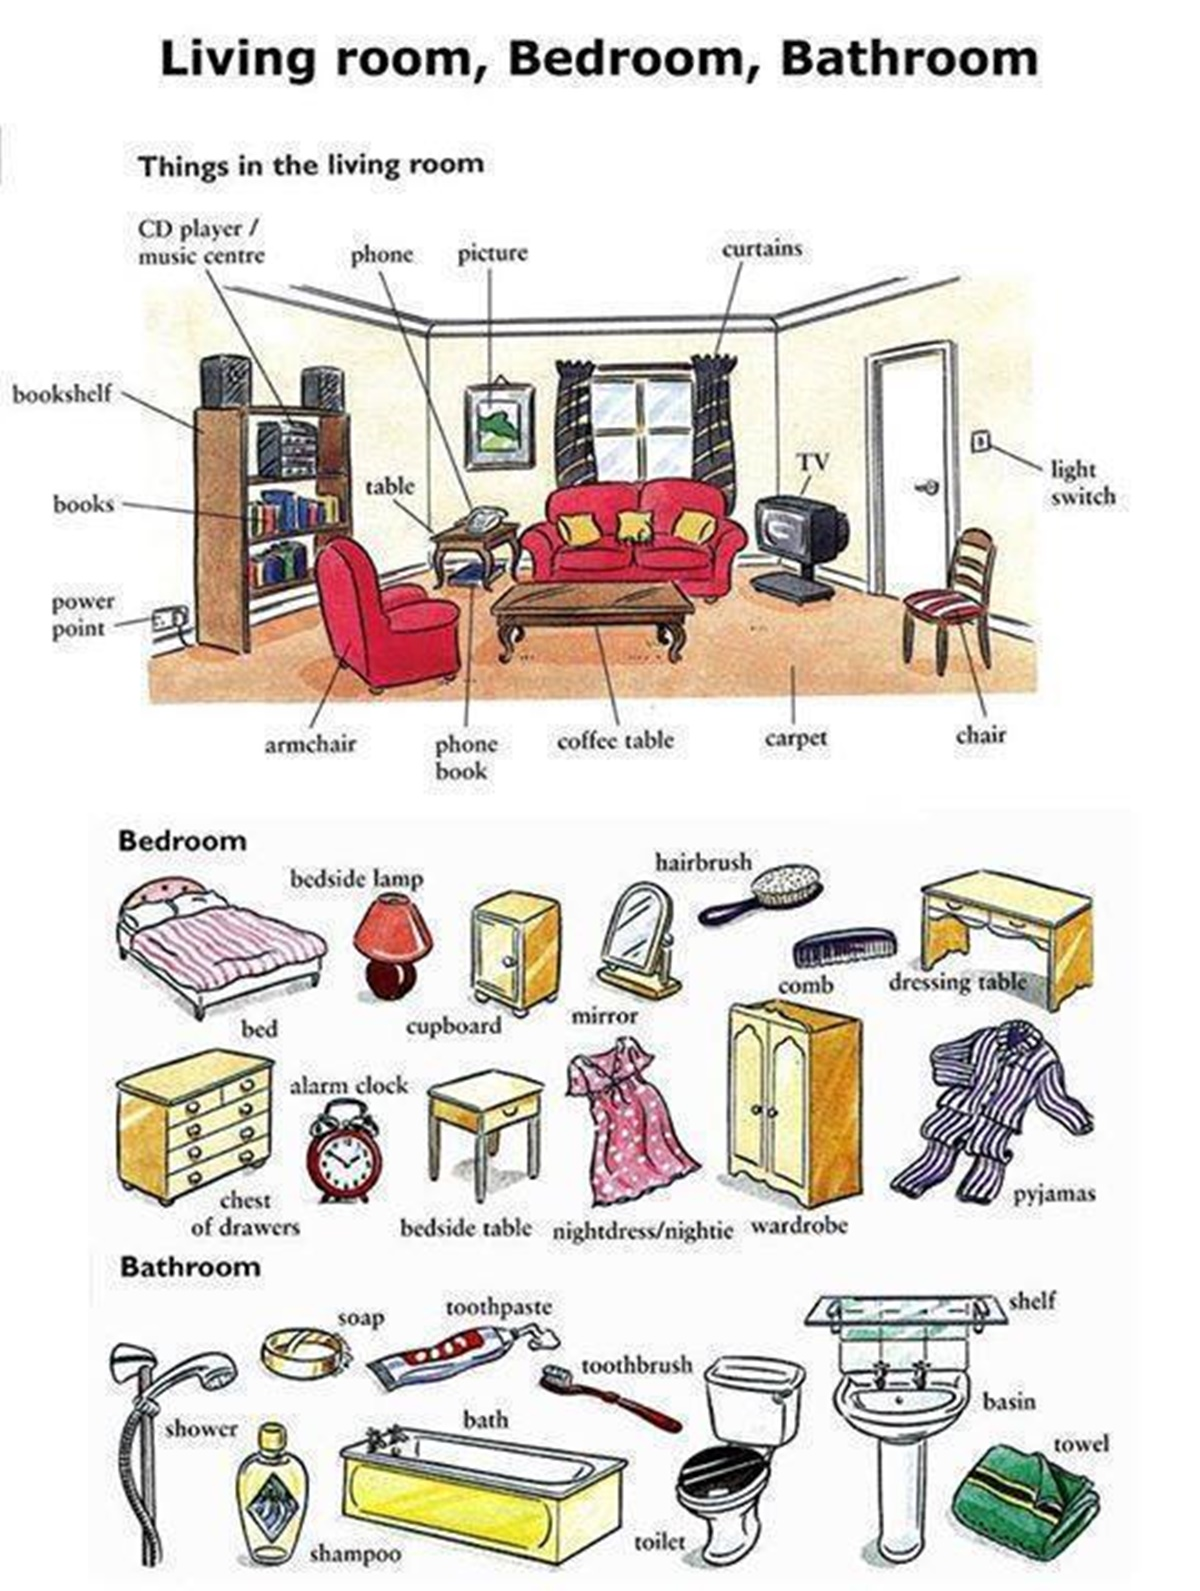 Things in a living room vocabulary living room for Living room vocabulary